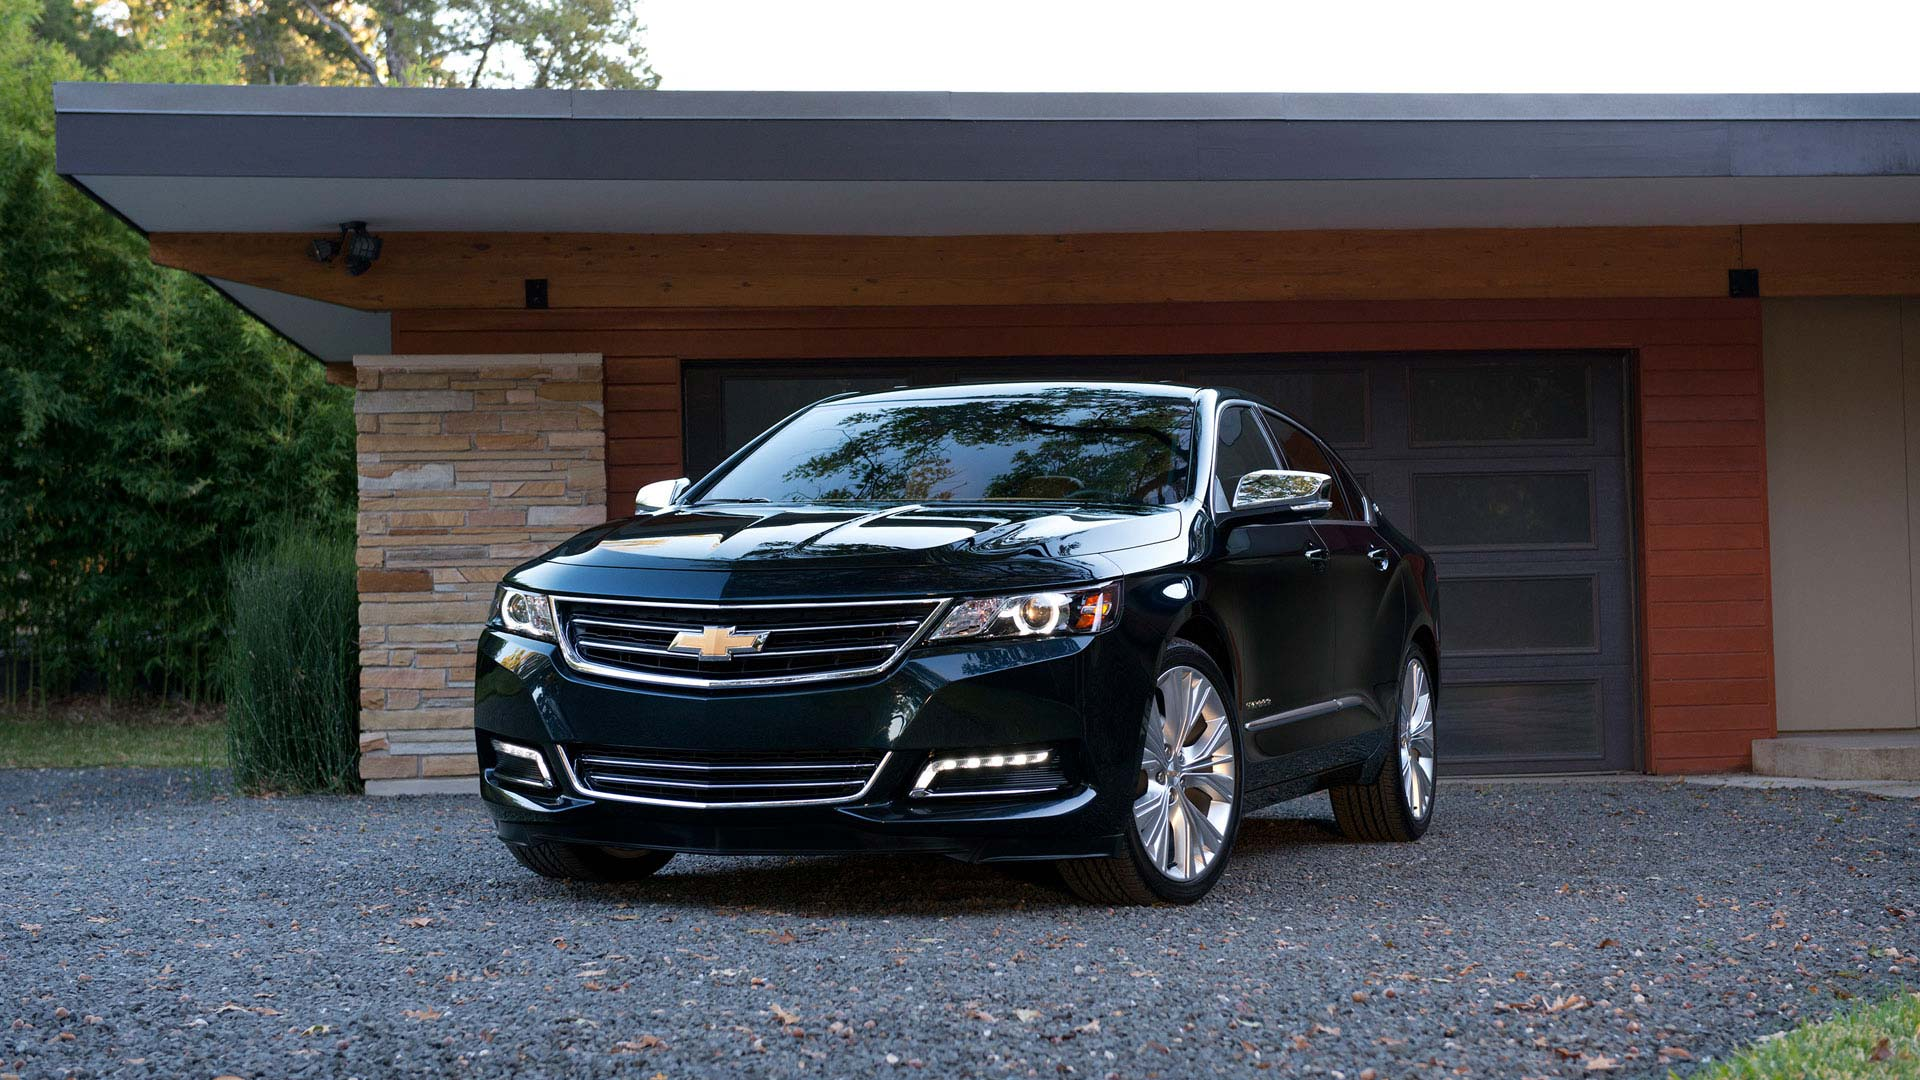 The 2016 Chevy Impala